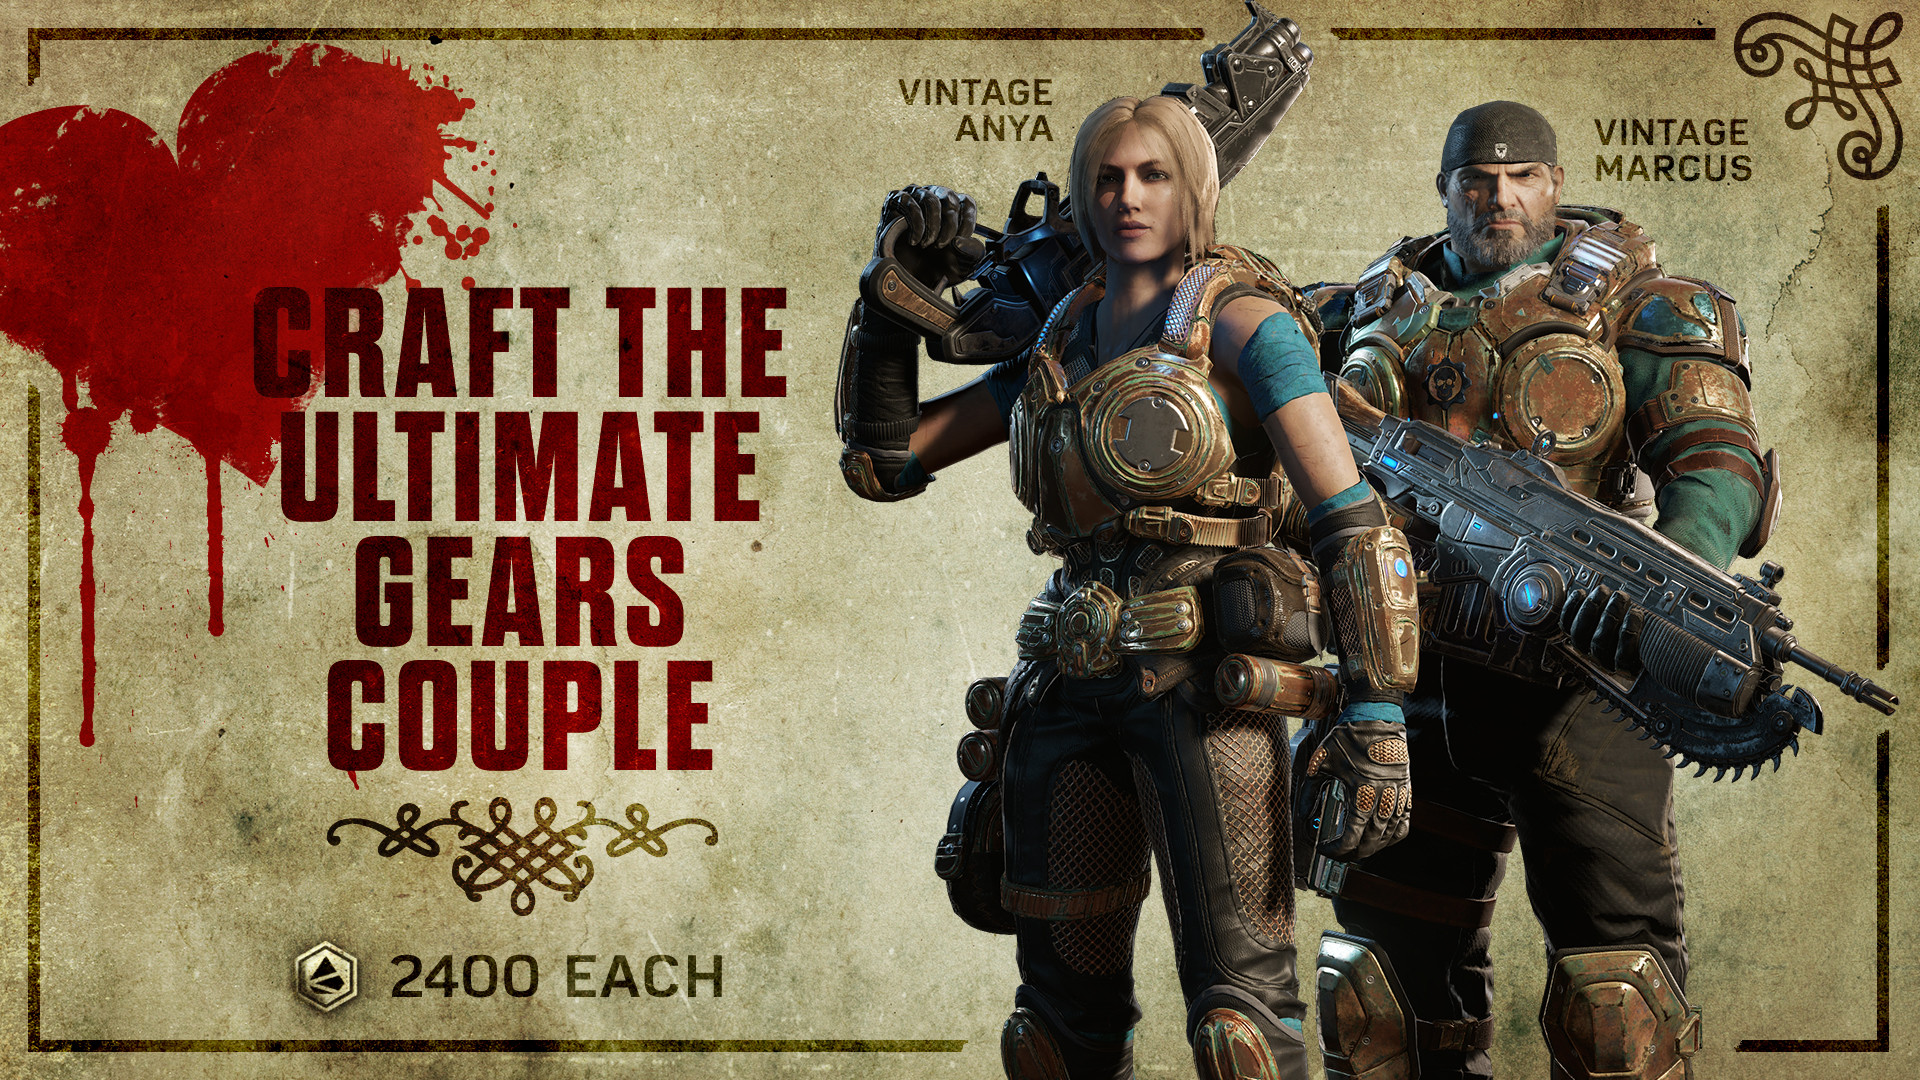 Craft the Ultimate Gears Couple